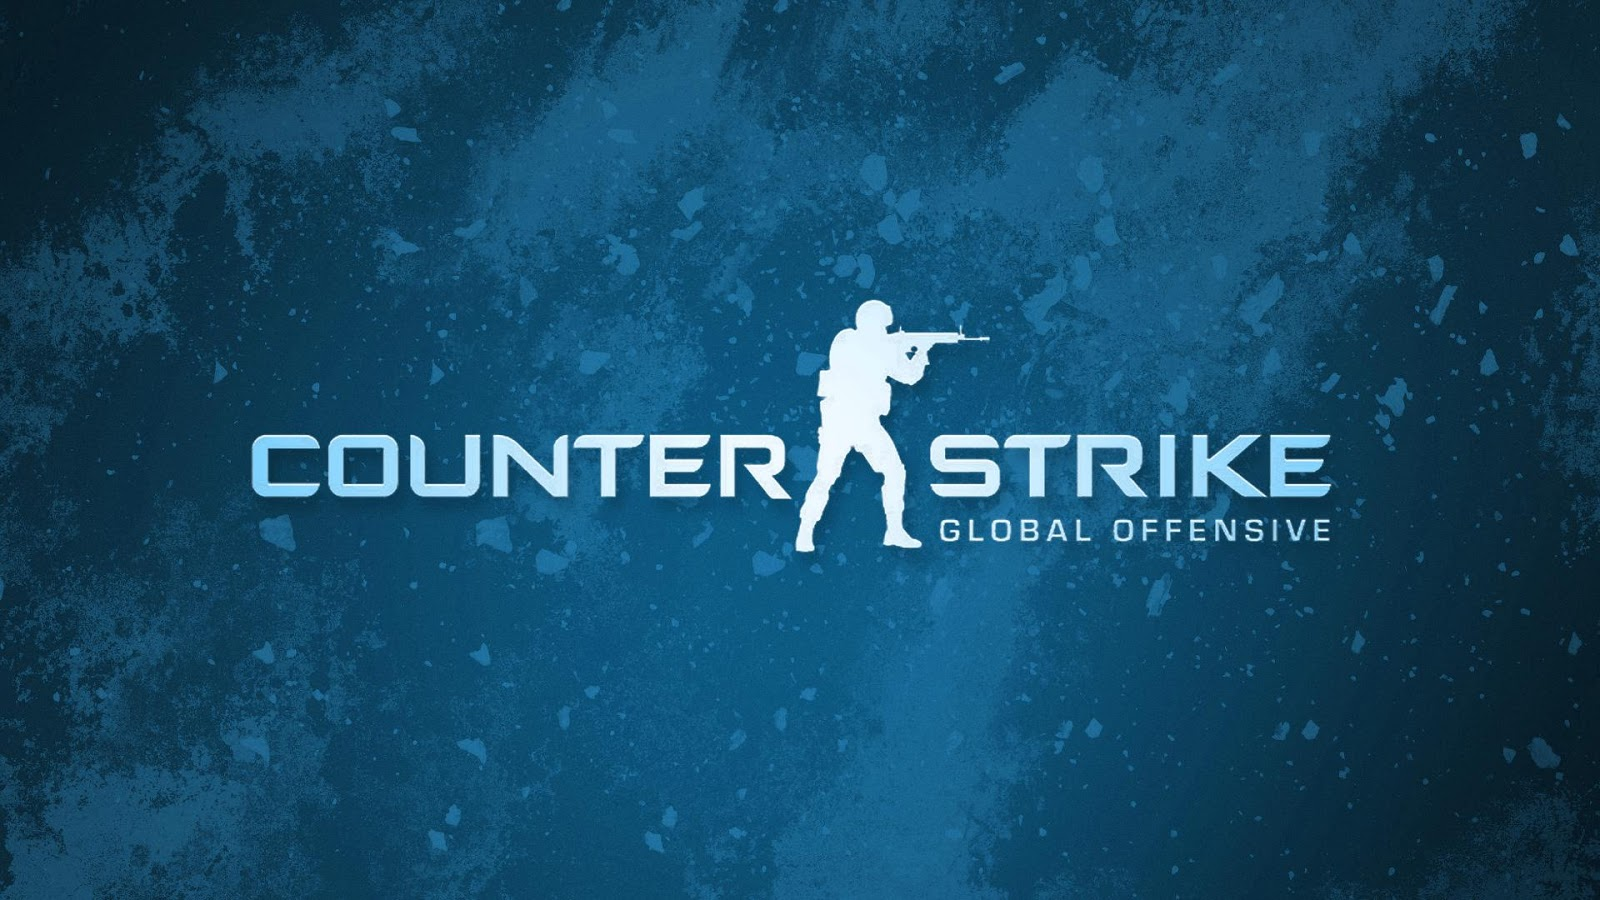 101 cs go hd wallpapers cool gaming backgrounds for Wallpaper interactivo